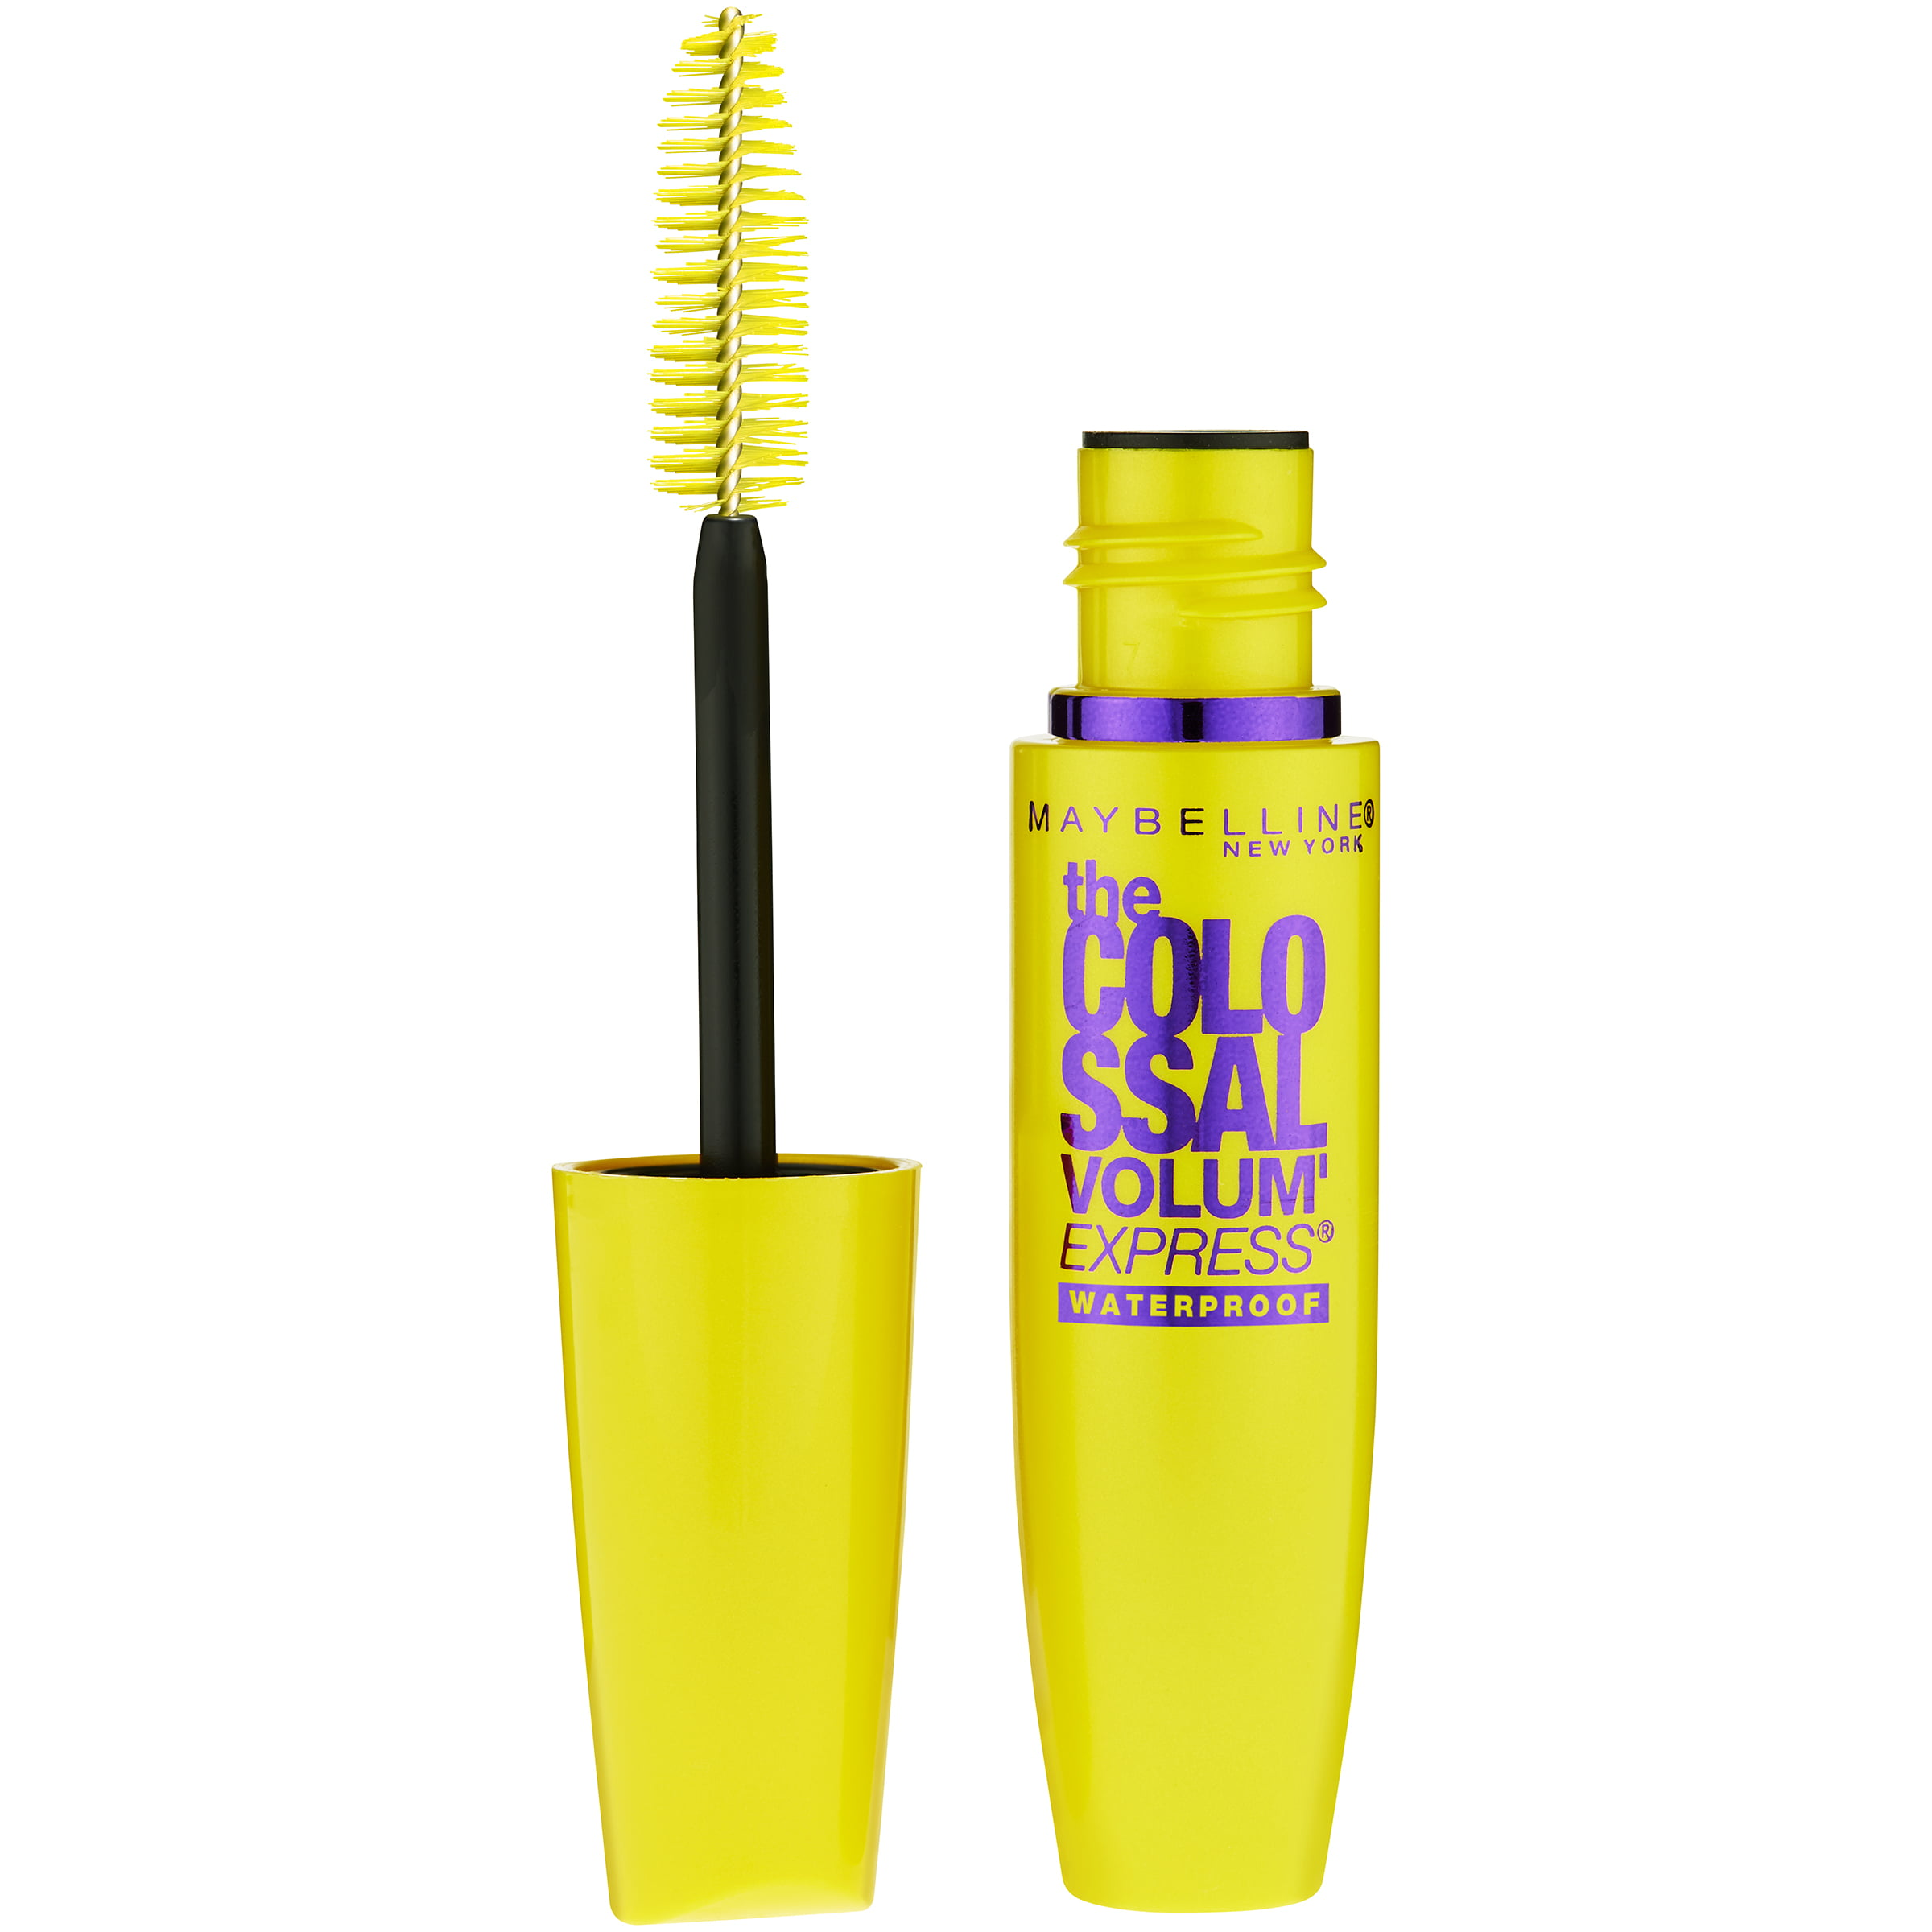 8c4514d4d50 Maybelline The Colossal Waterproof Mascara, Glam Black - Walmart.com